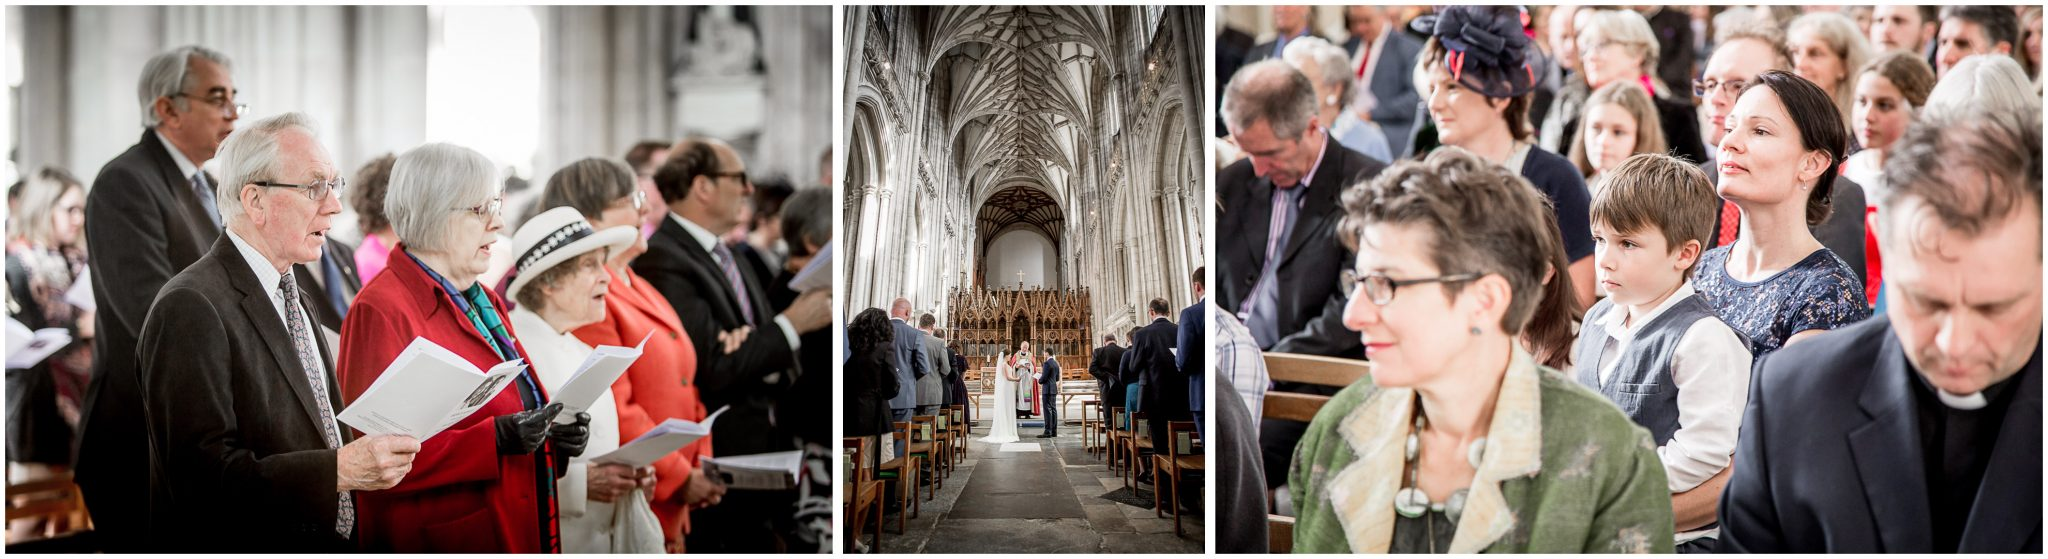 winchester cathedral wedding photography couple and guests during ceremony